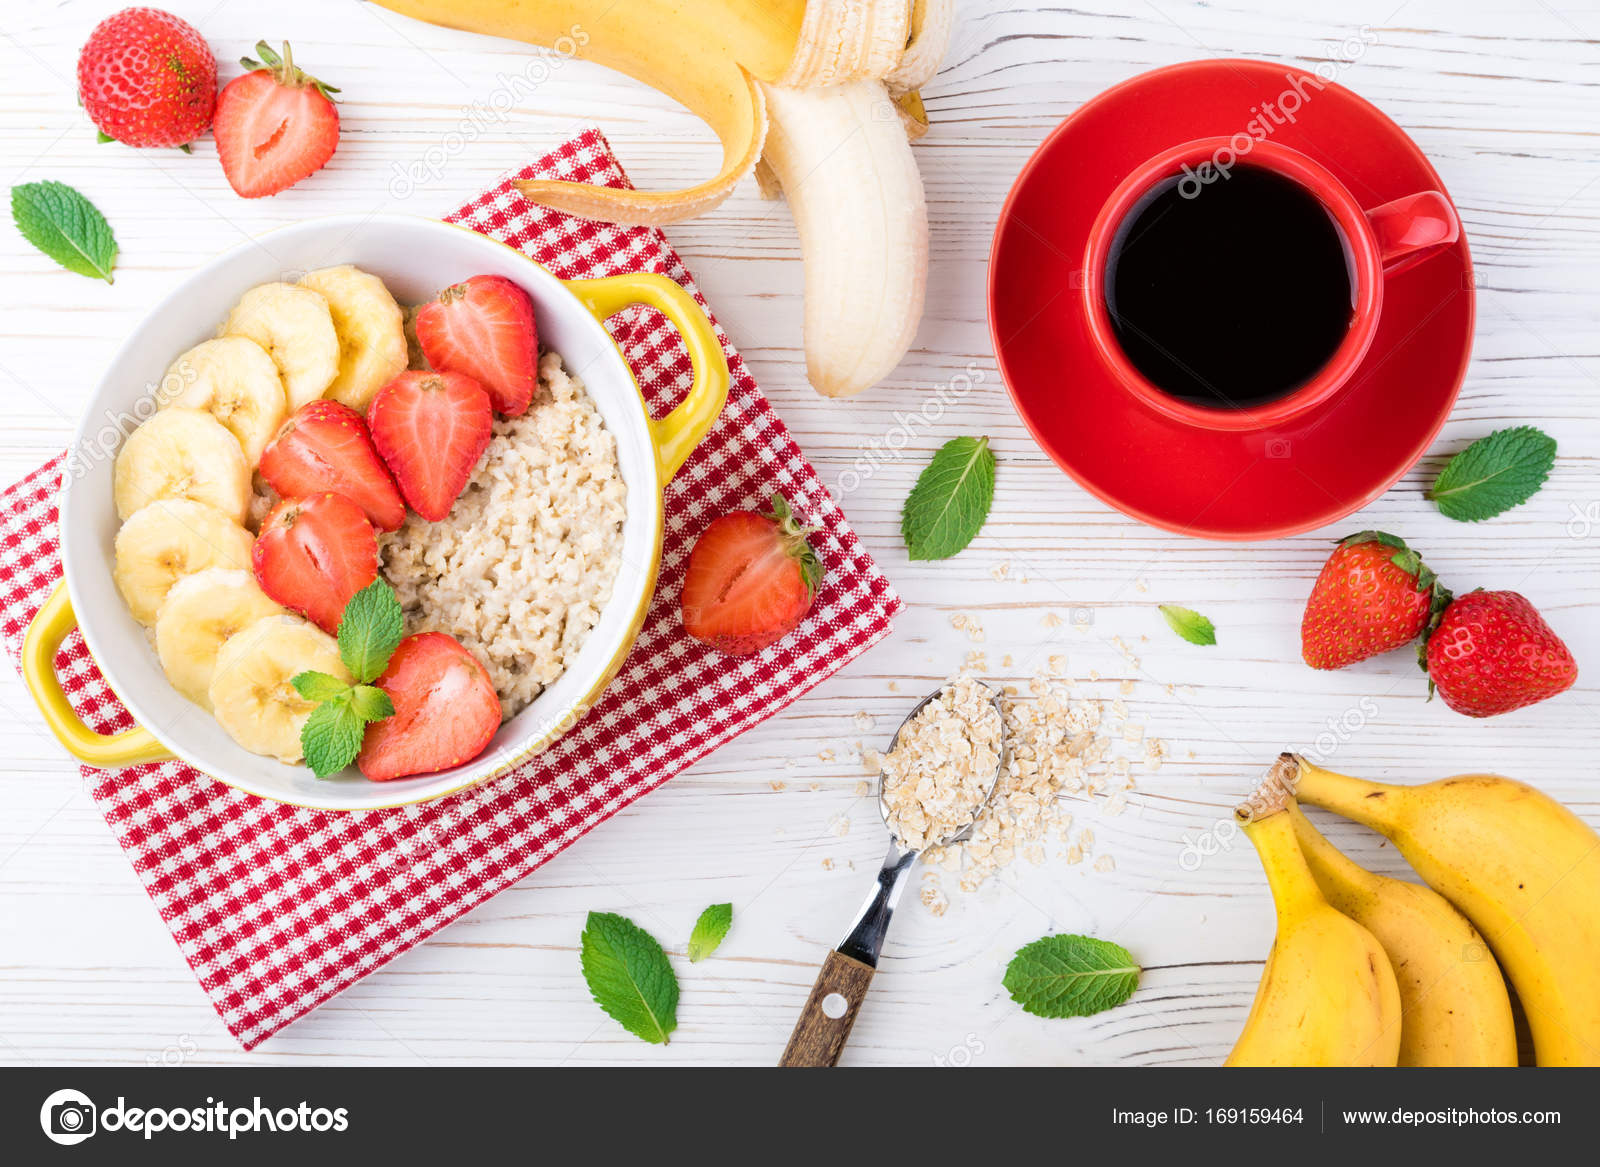 Breakfast With Oatmeal Porridge With Fruits And Berries Coffee Cup Oatmeal With Strawberries And Banana Healthy Breakfast Concept Stock Photo Image By C Lanasweet 169159464